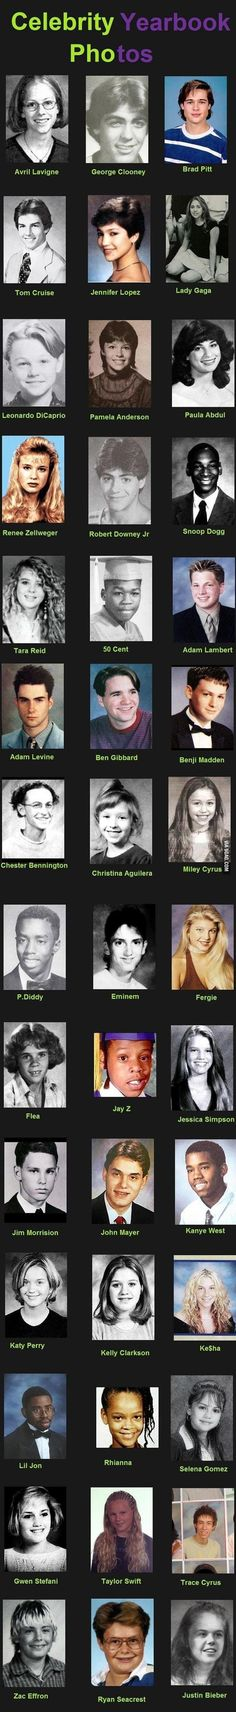 Just some celebrity yearbook photos